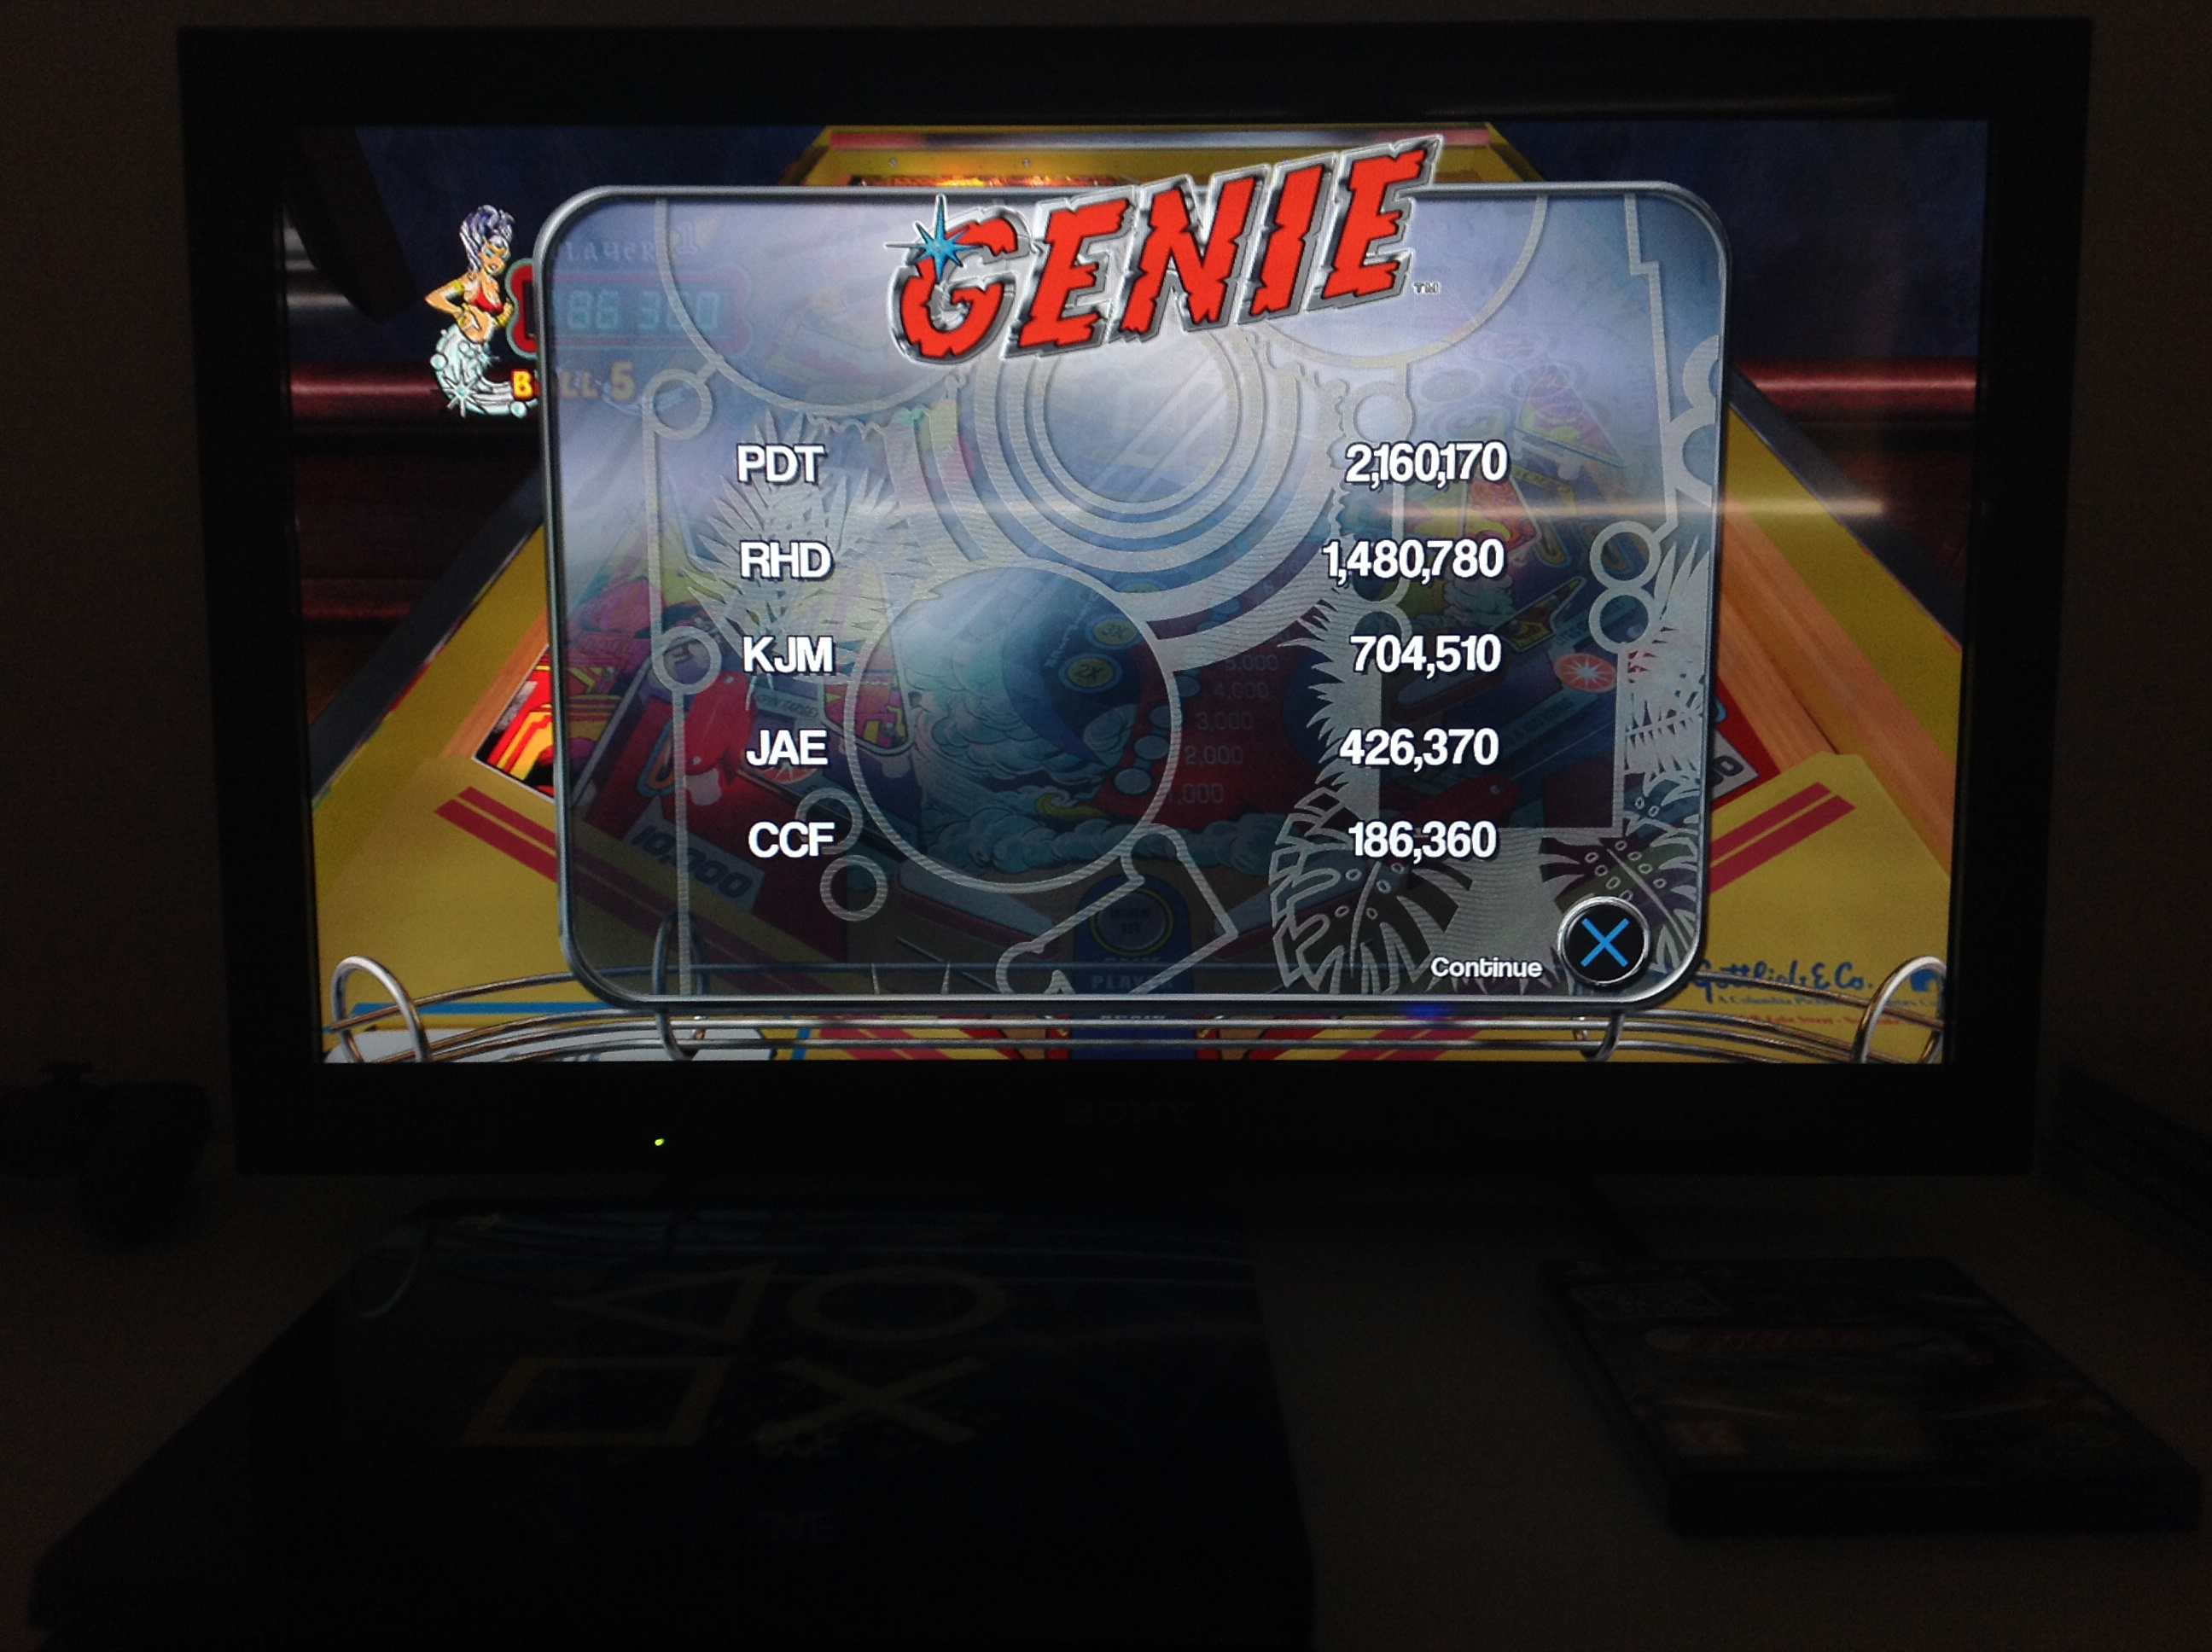 CoCoForest: Pinball Arcade: Genie (Playstation 4) 186,360 points on 2018-07-05 13:34:49